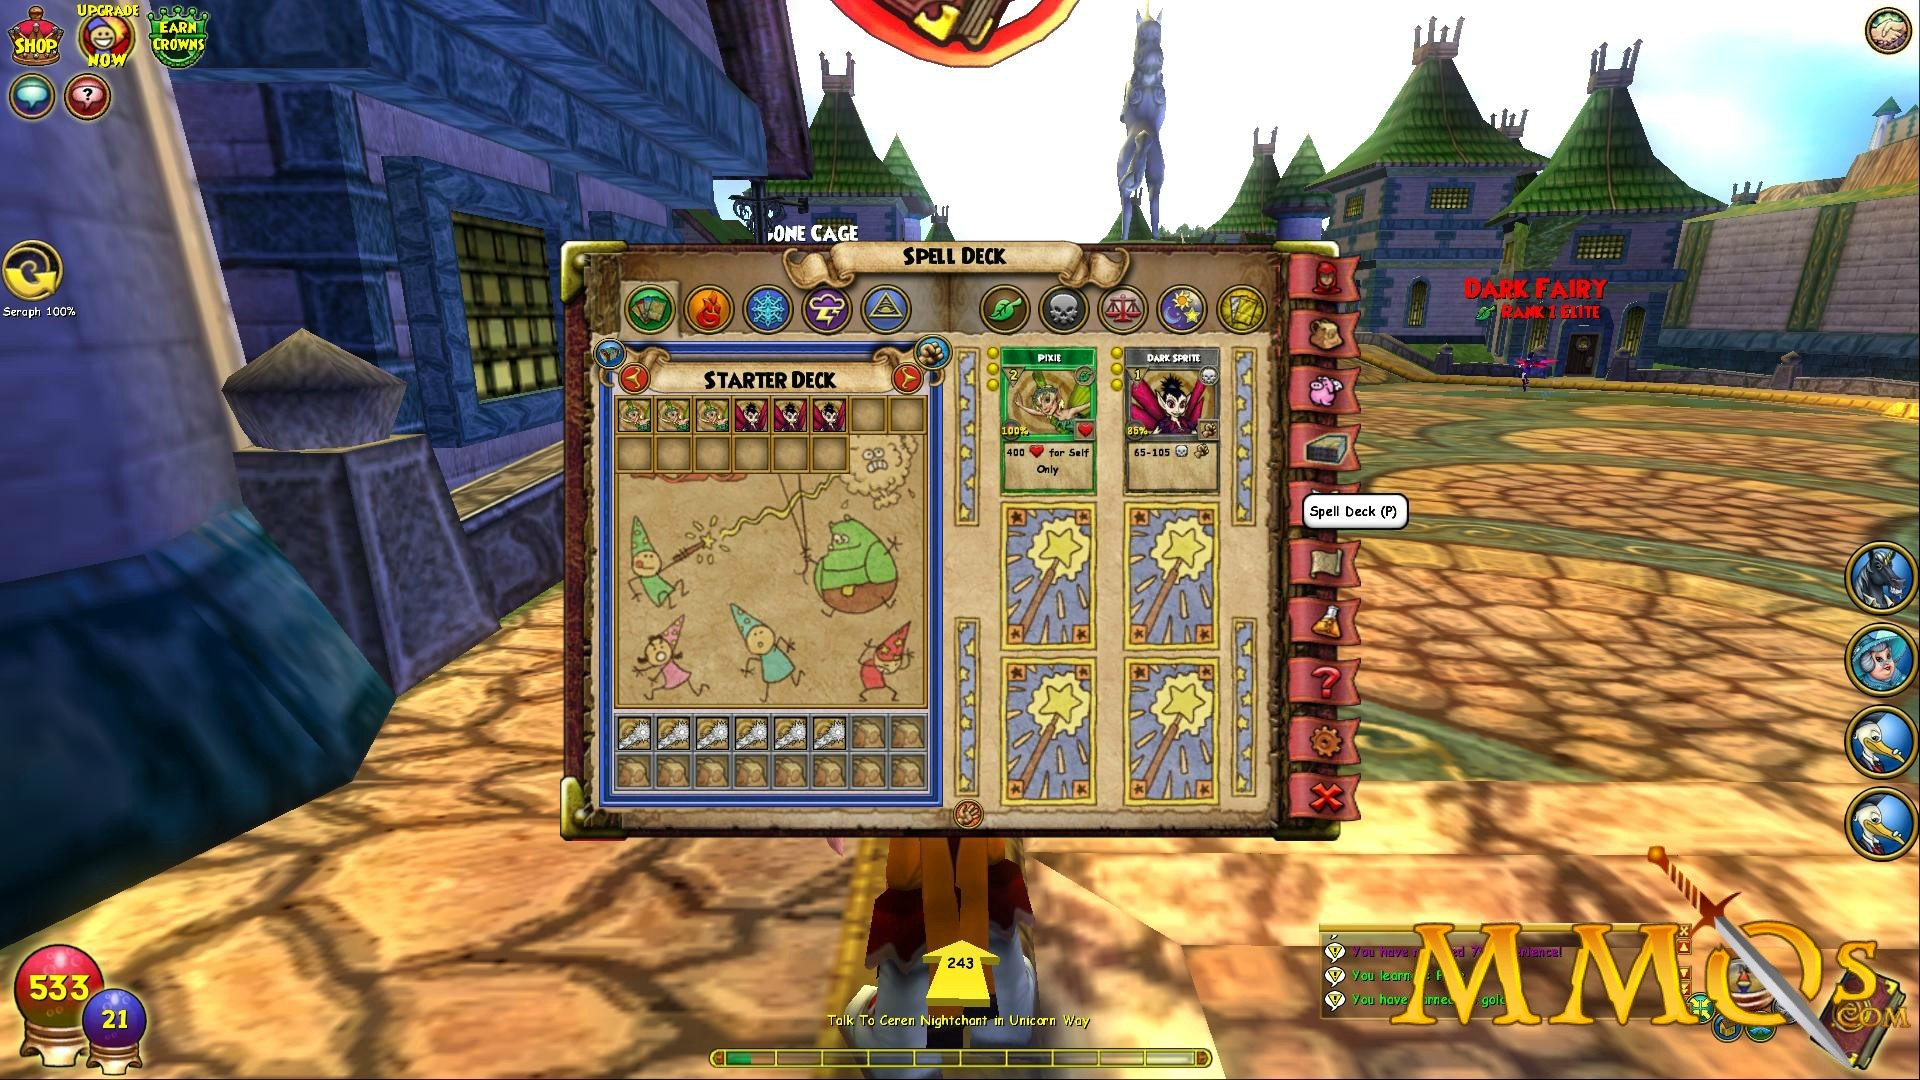 Res: 1920x1080, Wizard101 spell deck